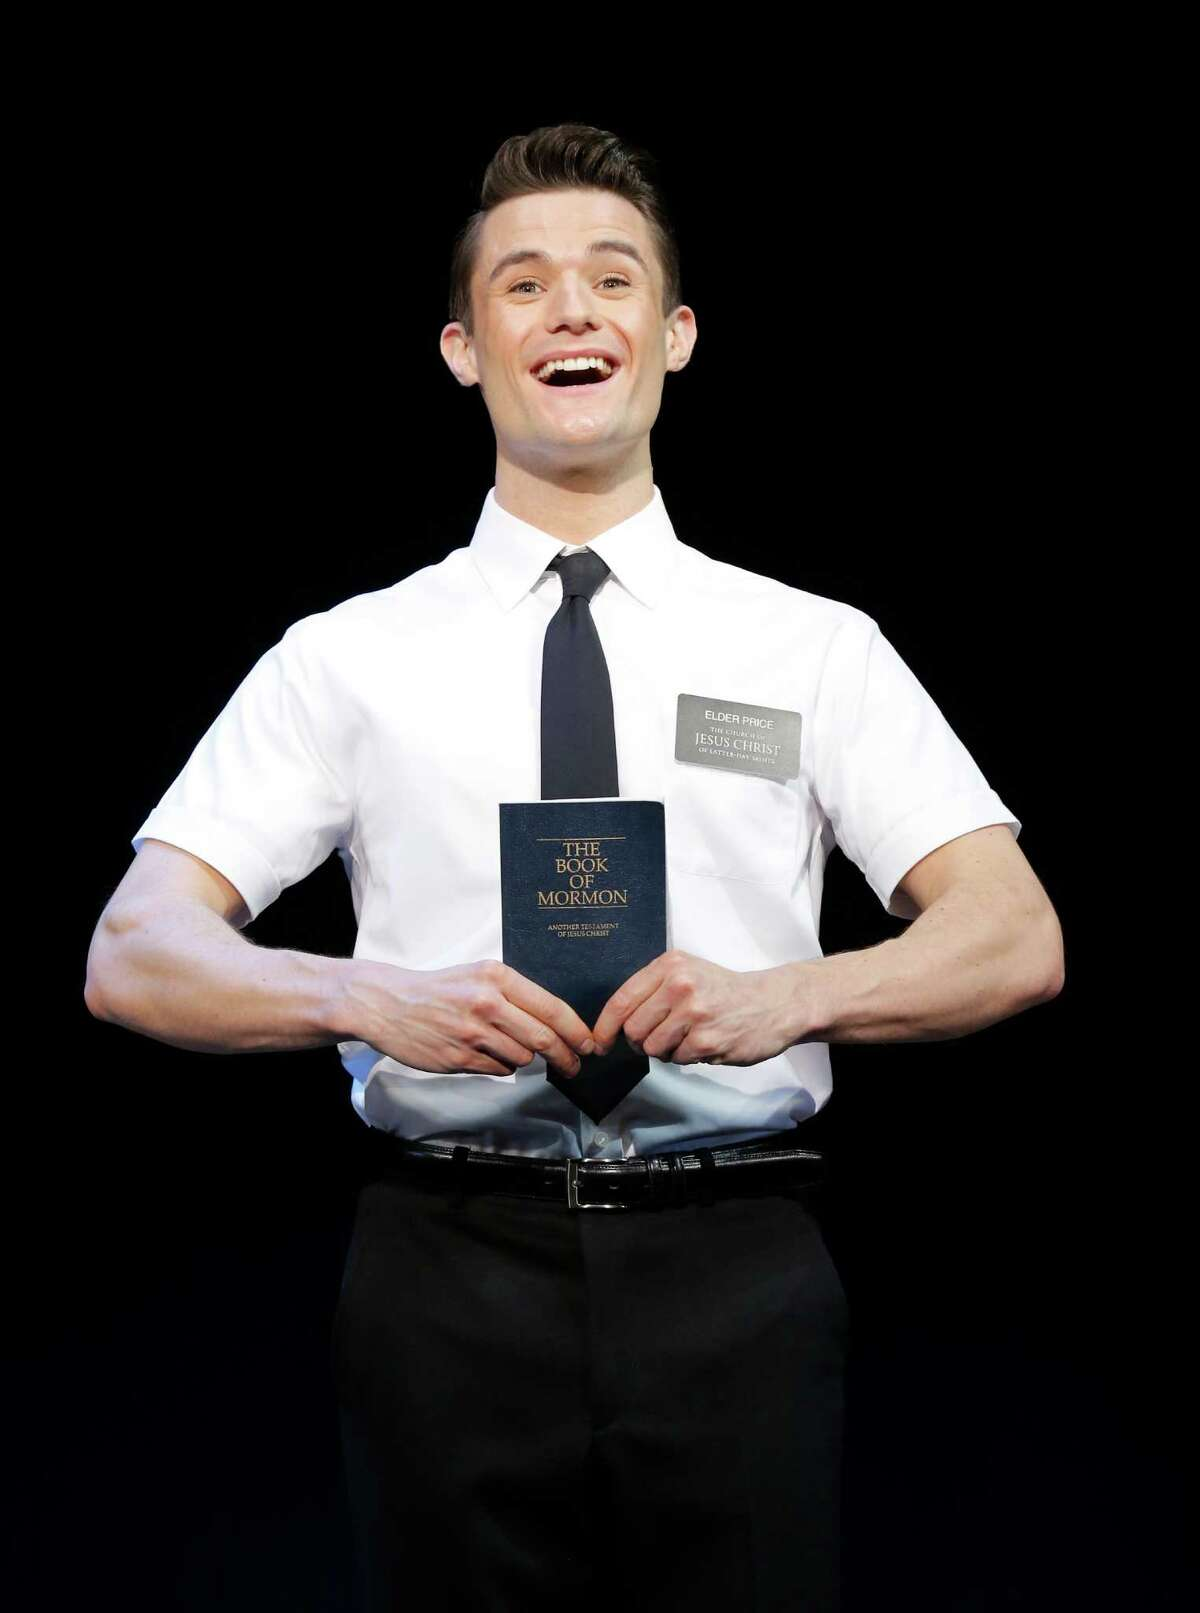 """Mark Evans in the first national tour of """"THE BOOK OF MORMON,"""" which will will be presented in Houston as part of the 2013-2014 Gexa Energy Broadway series at the Hobby Center. The Book of Mormon"""